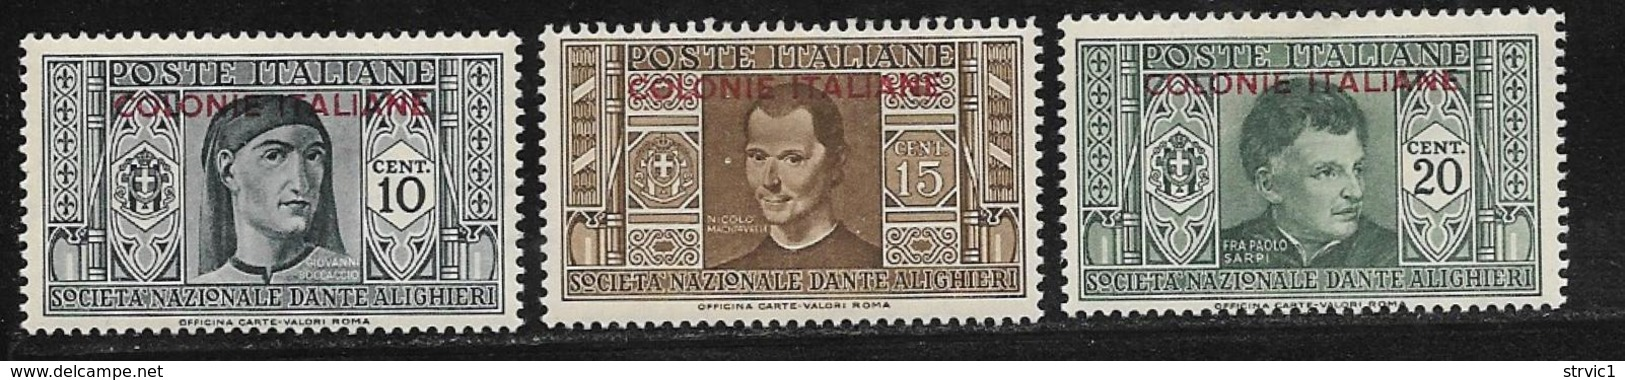 Italian Colonies Scott # 1-3 Mint Hinged Italy Dante Issue Overprinted, 1932 - Italy